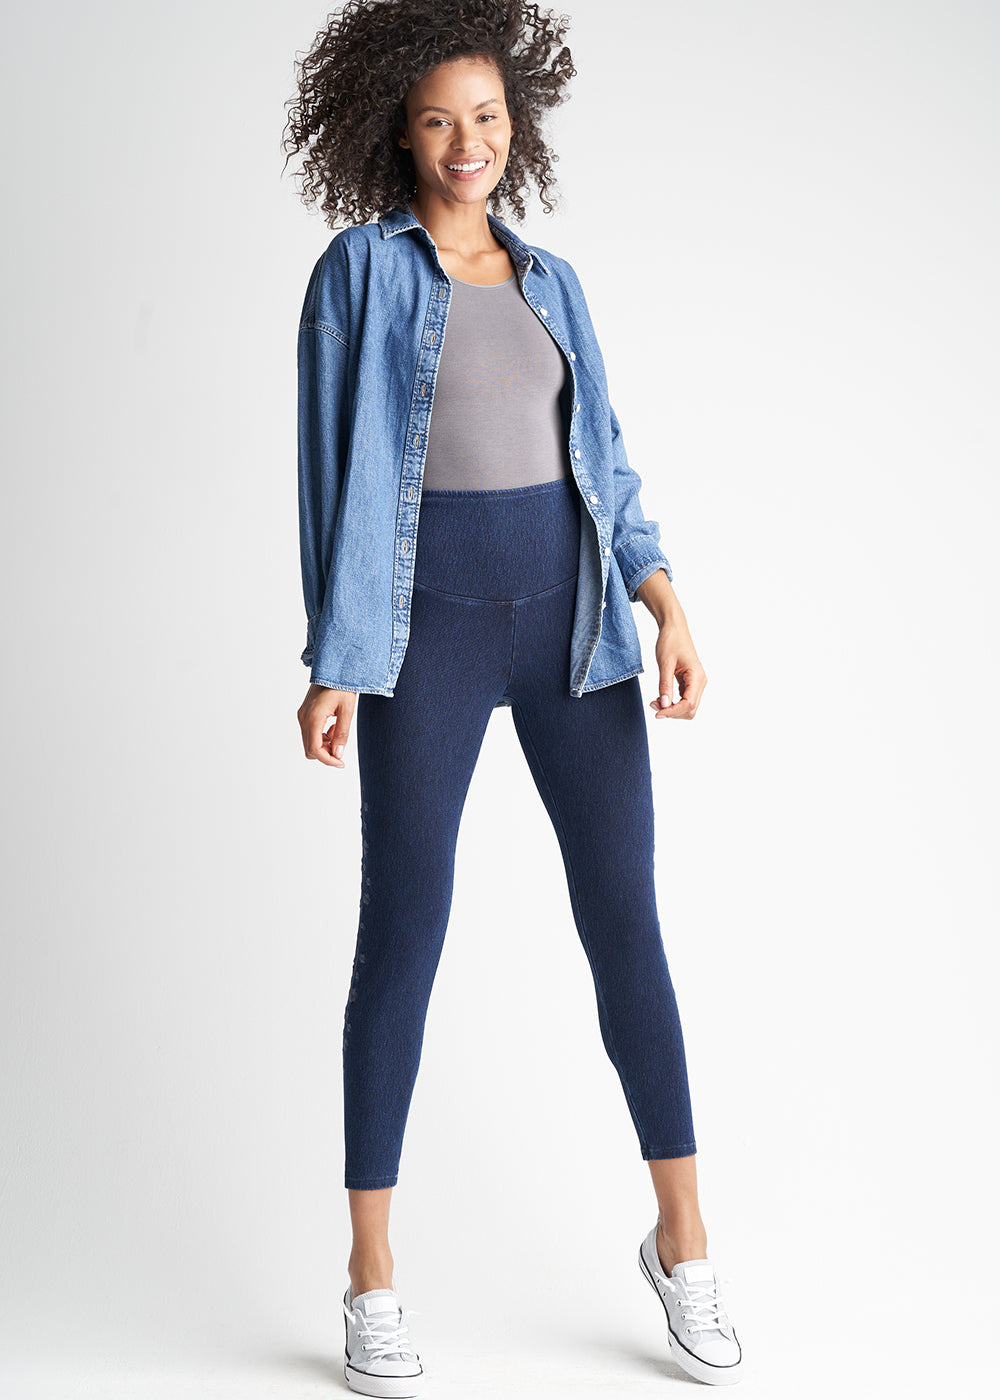 Denim Skimmer Shaping Legging with Floral Embroidery